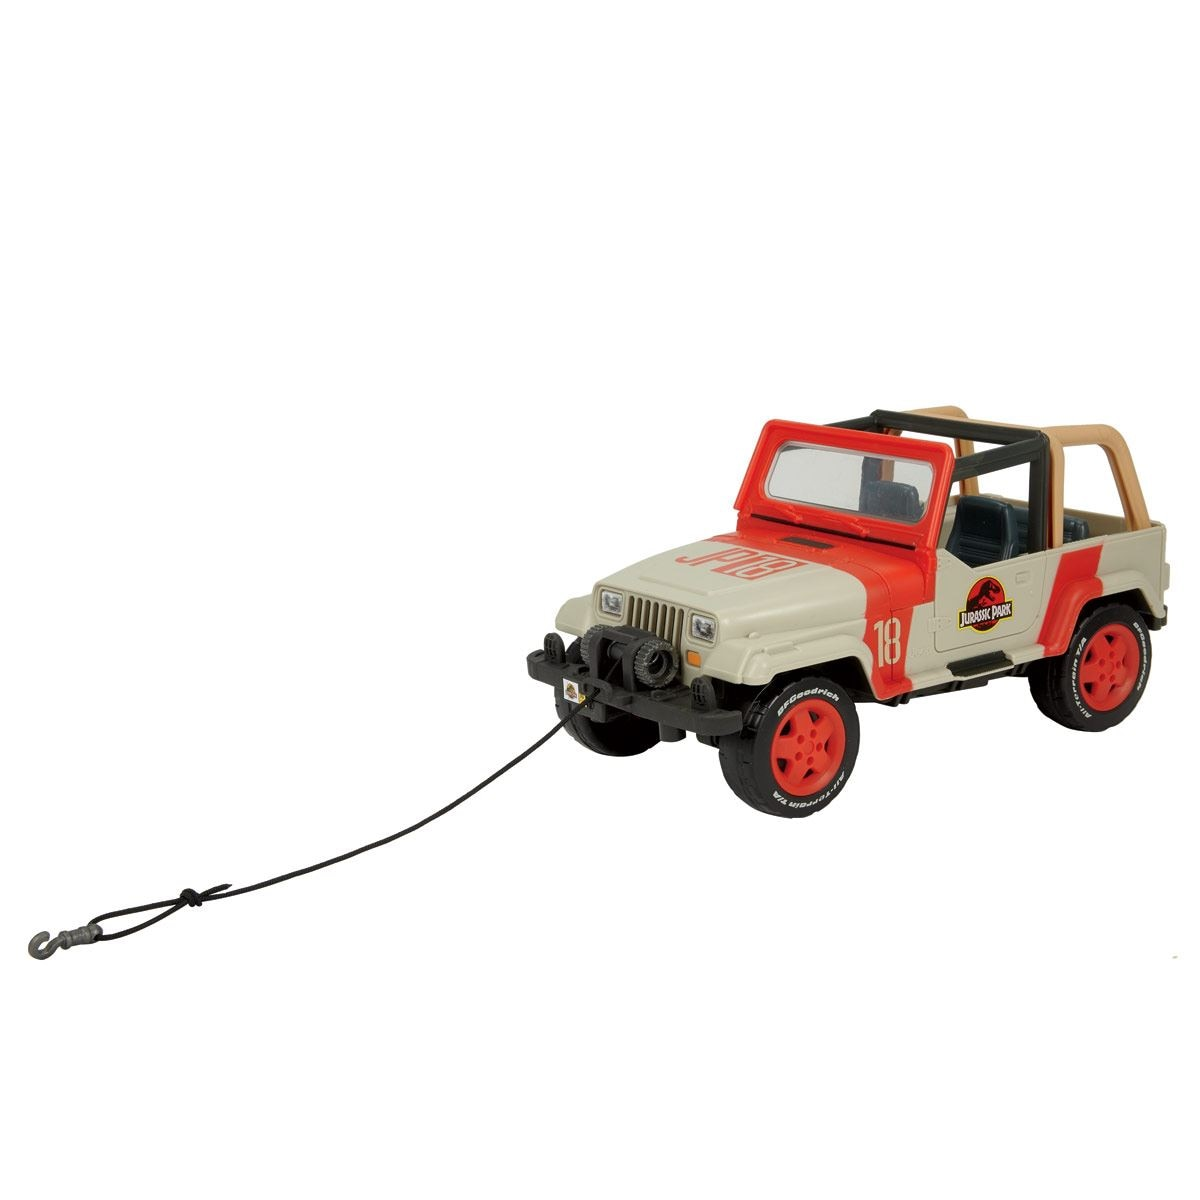 Jeep Wrangler  Jurassic World Matchbox